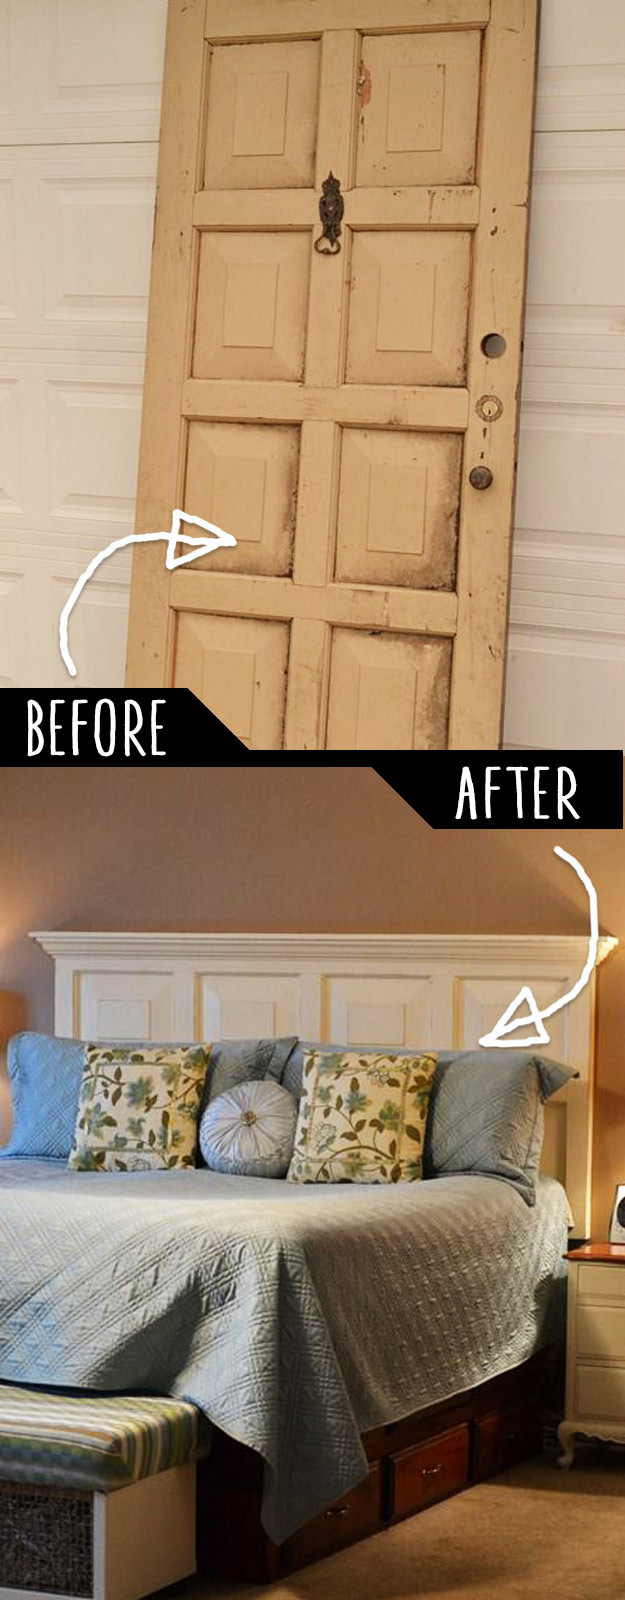 39 clever diy furniture hacks diy furniture hacks door headboard cool ideas for creative do it yourself furniture made solutioingenieria Images